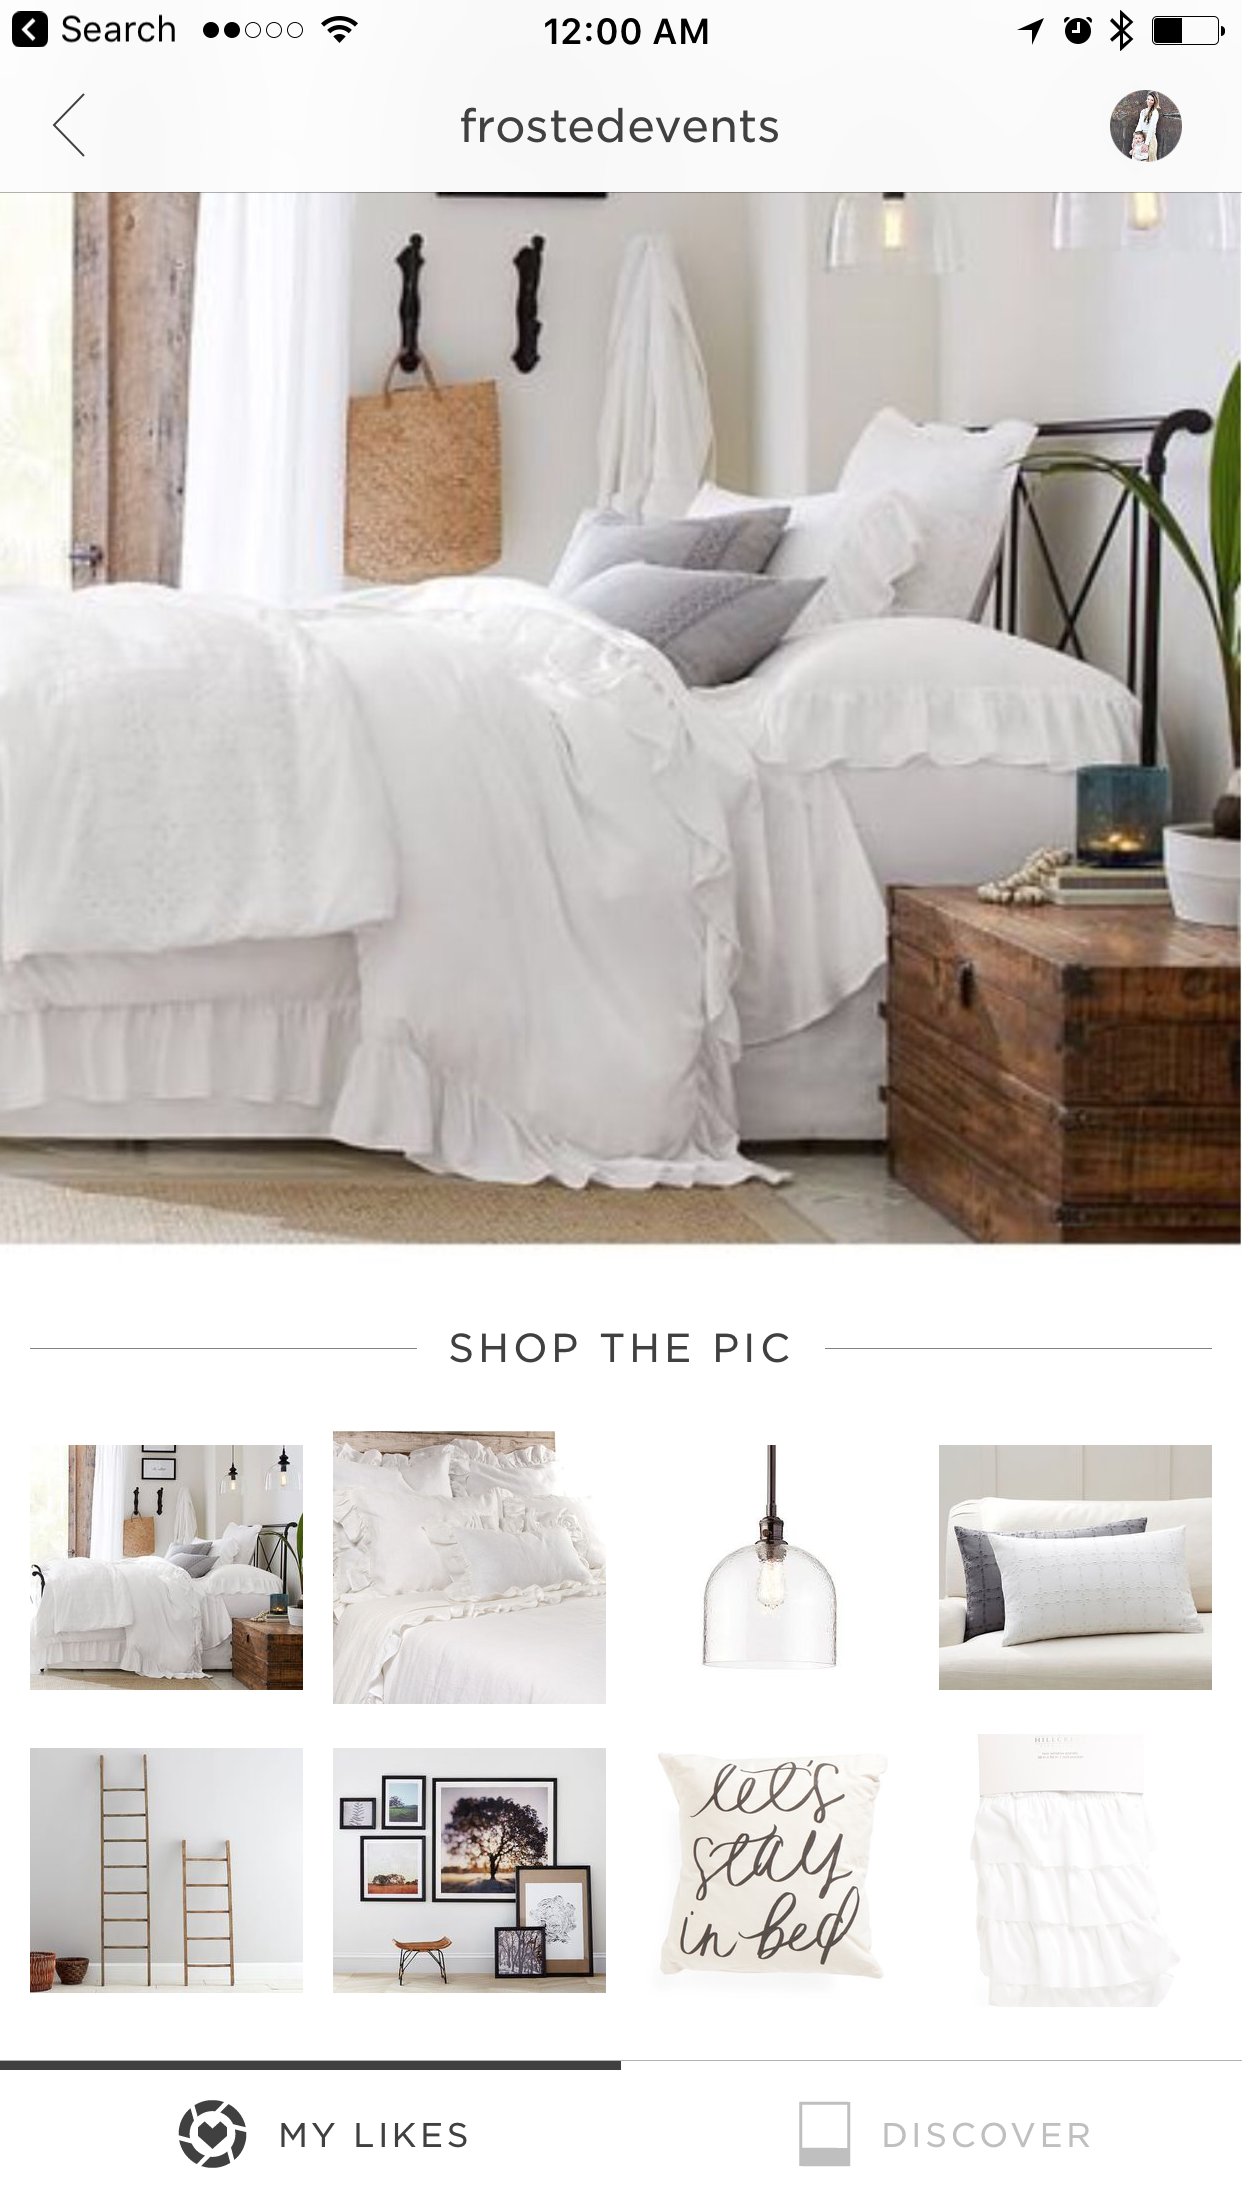 Bedroom ideas white bedding, ruffle duvet from Pottery